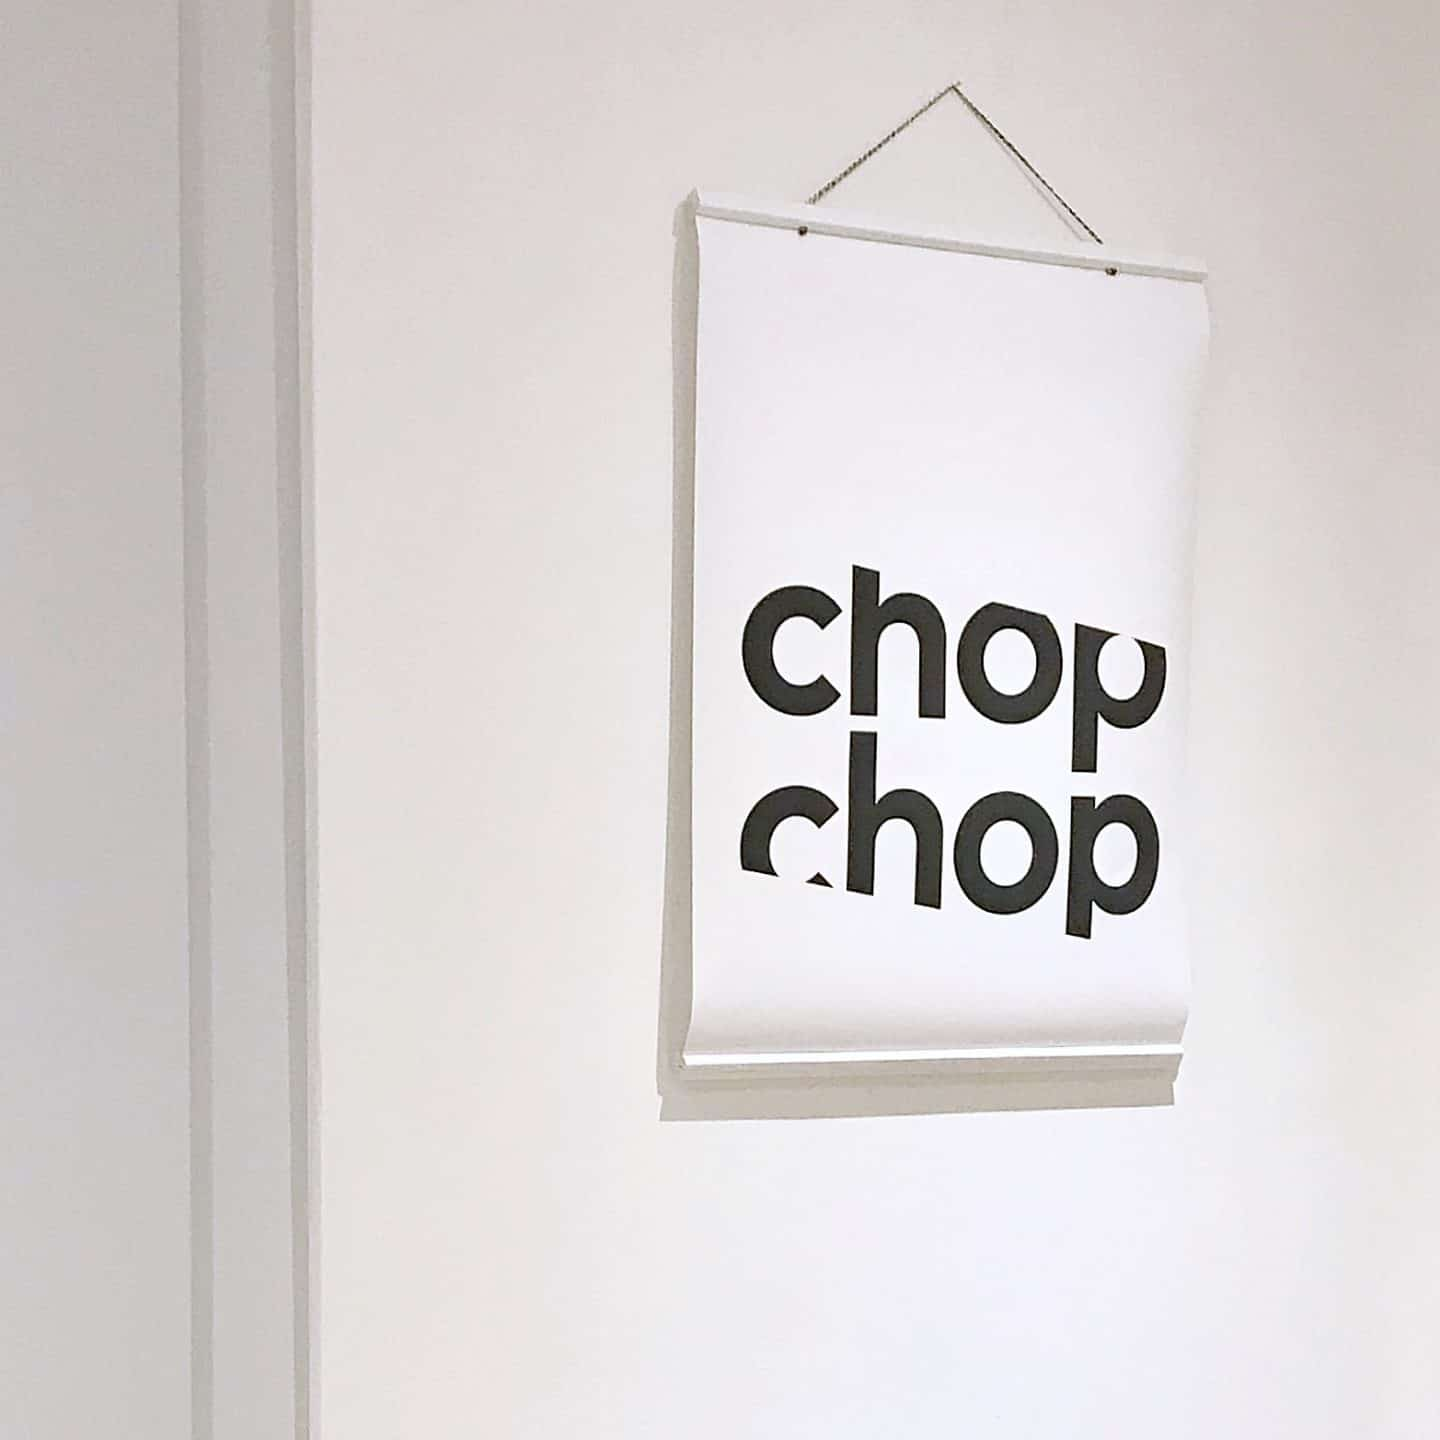 Gayle Mansfield Chop Chop print makes a perfect Mother's Day gift idea